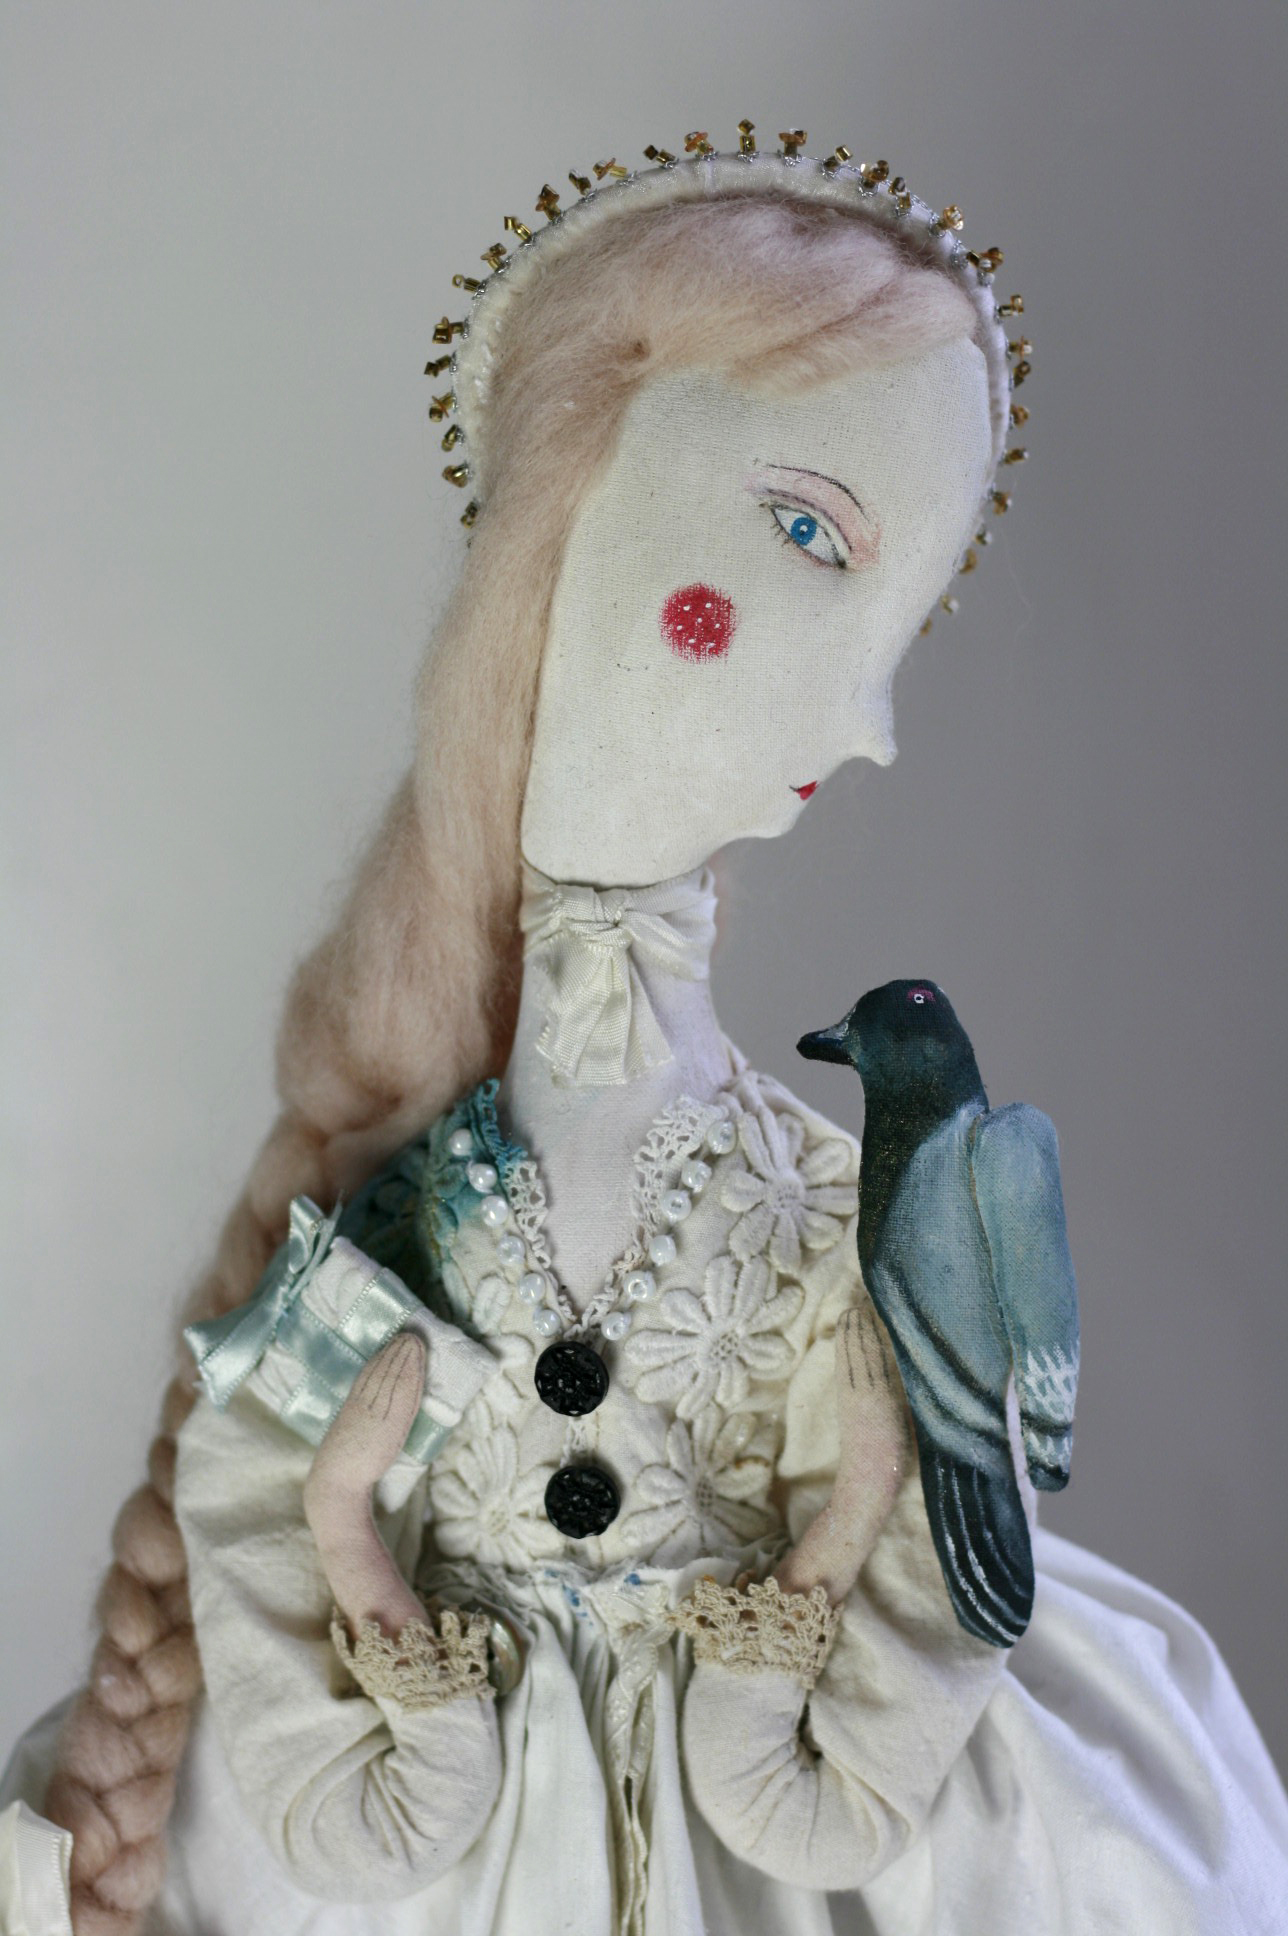 fairytale doll art